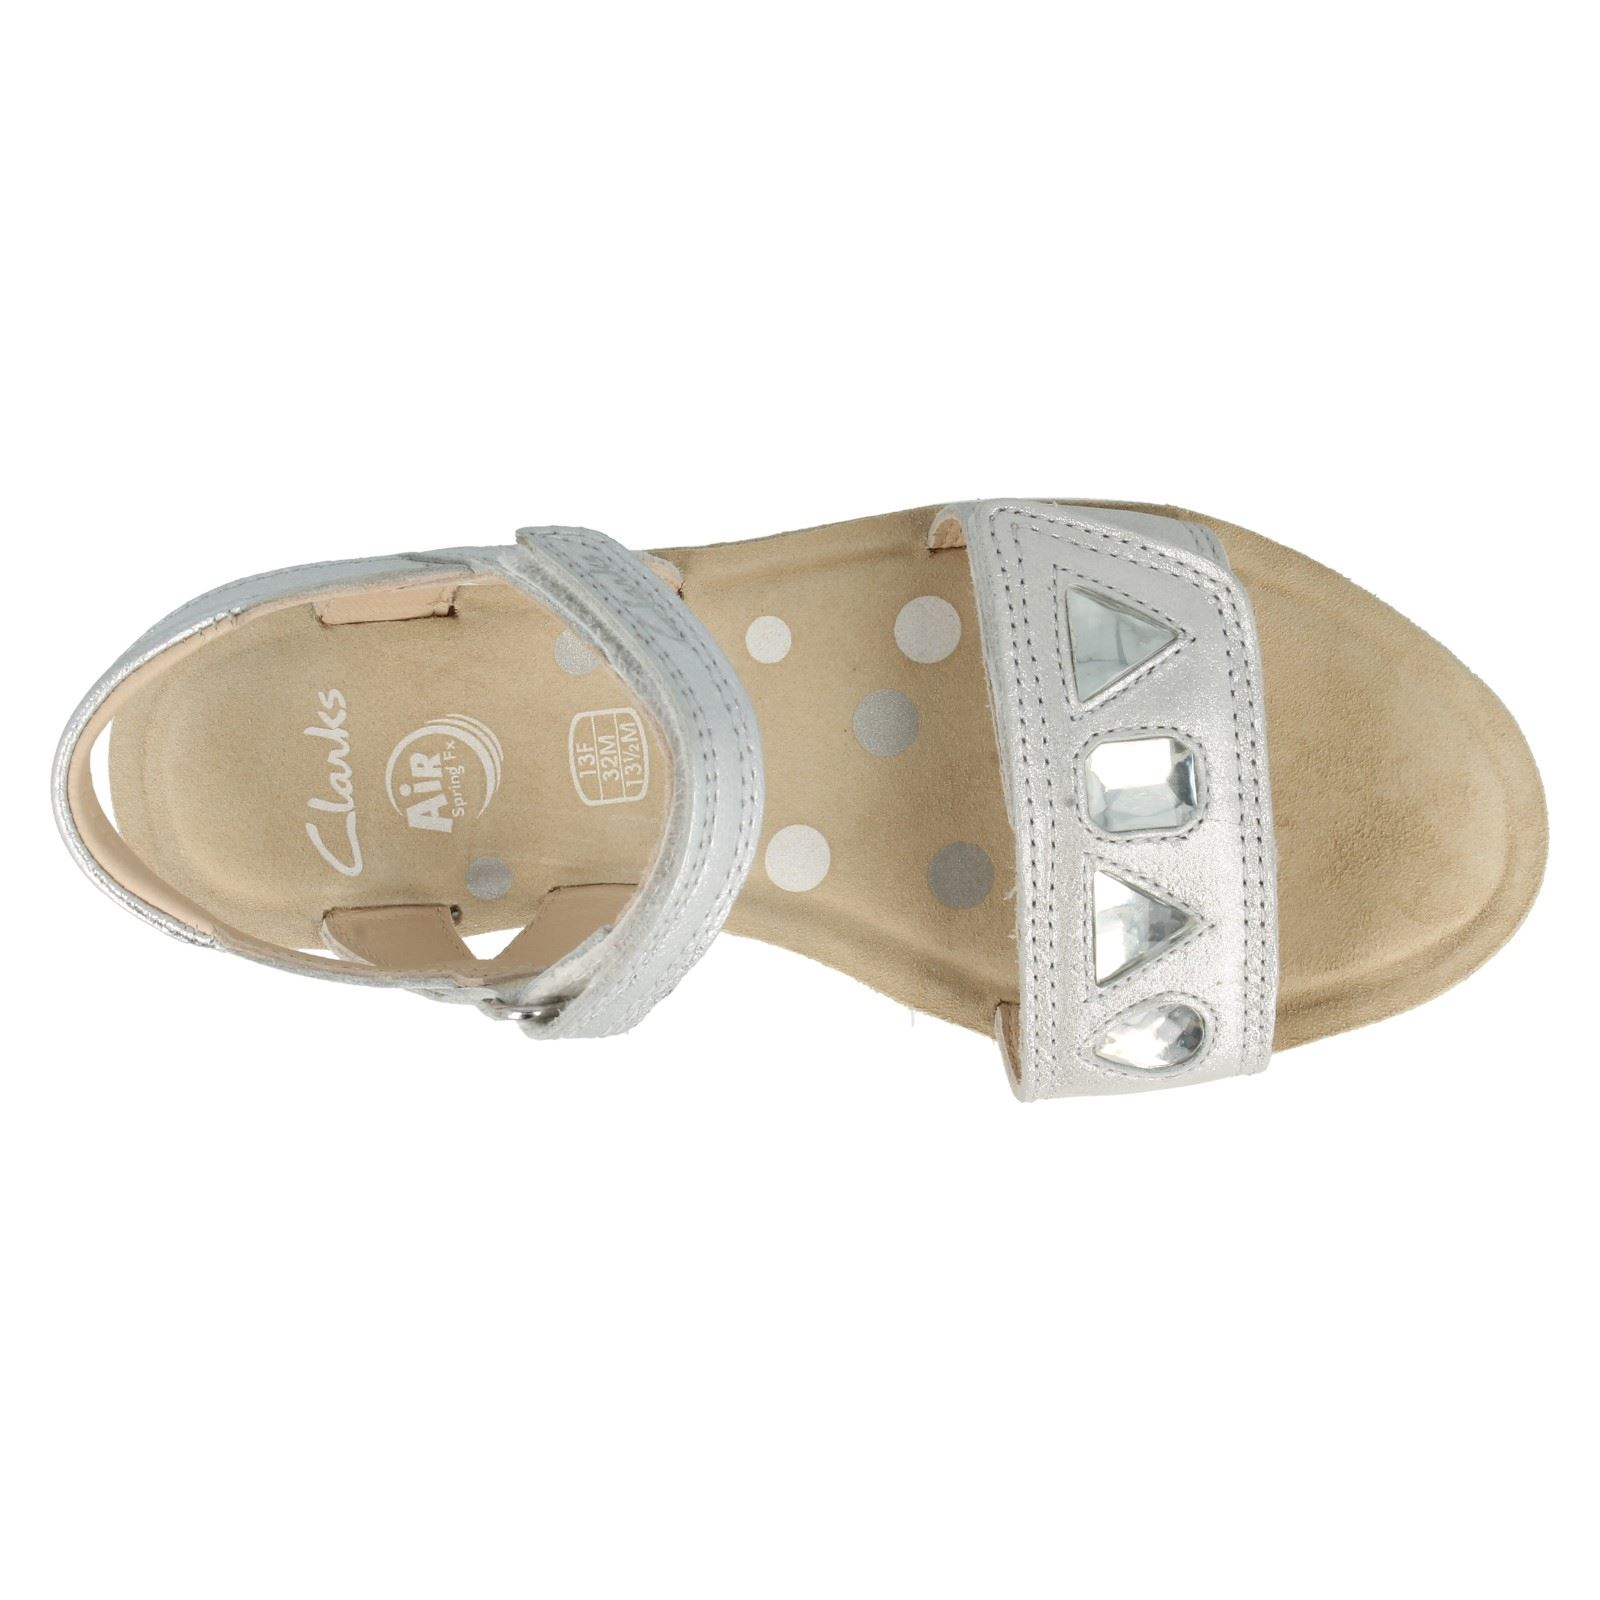 Girls Clarks Sandals Mimomagic